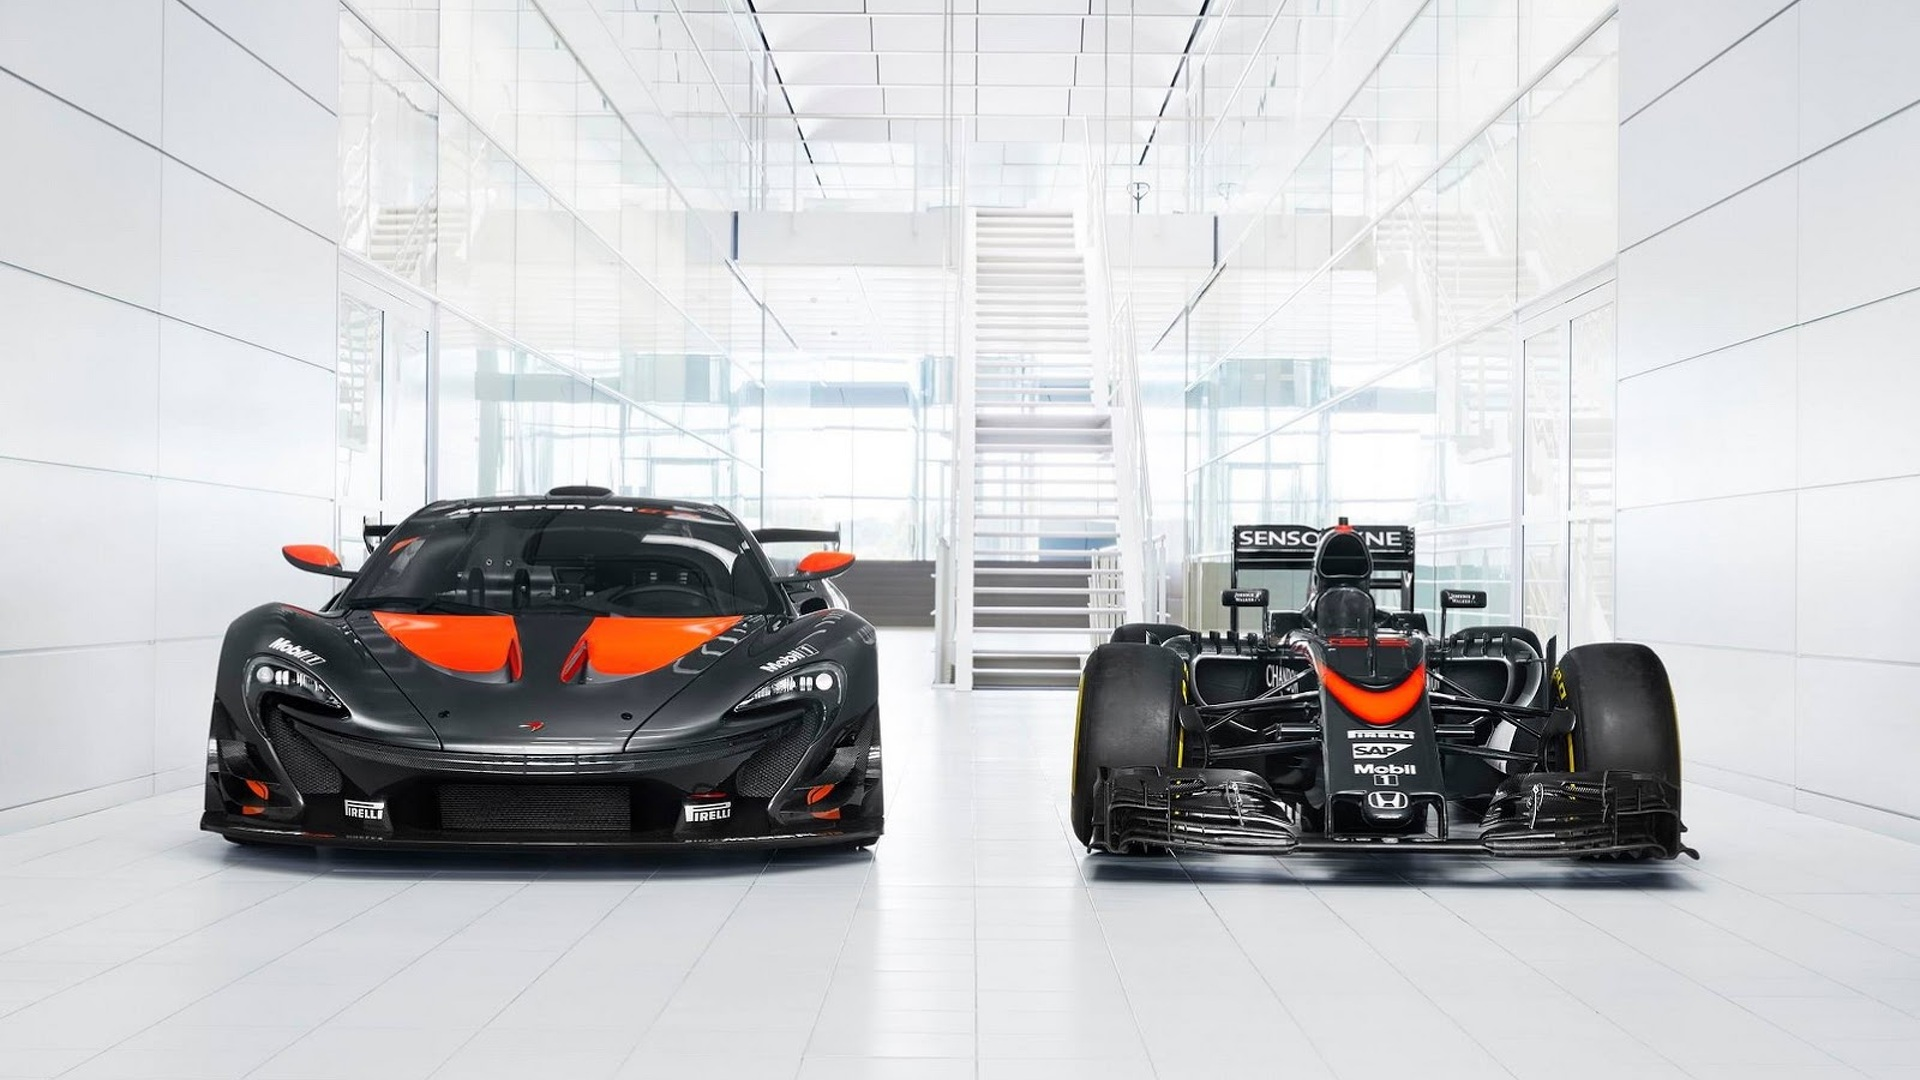 McLaren P1 GTR gets custom livery to match its F1 counterpart